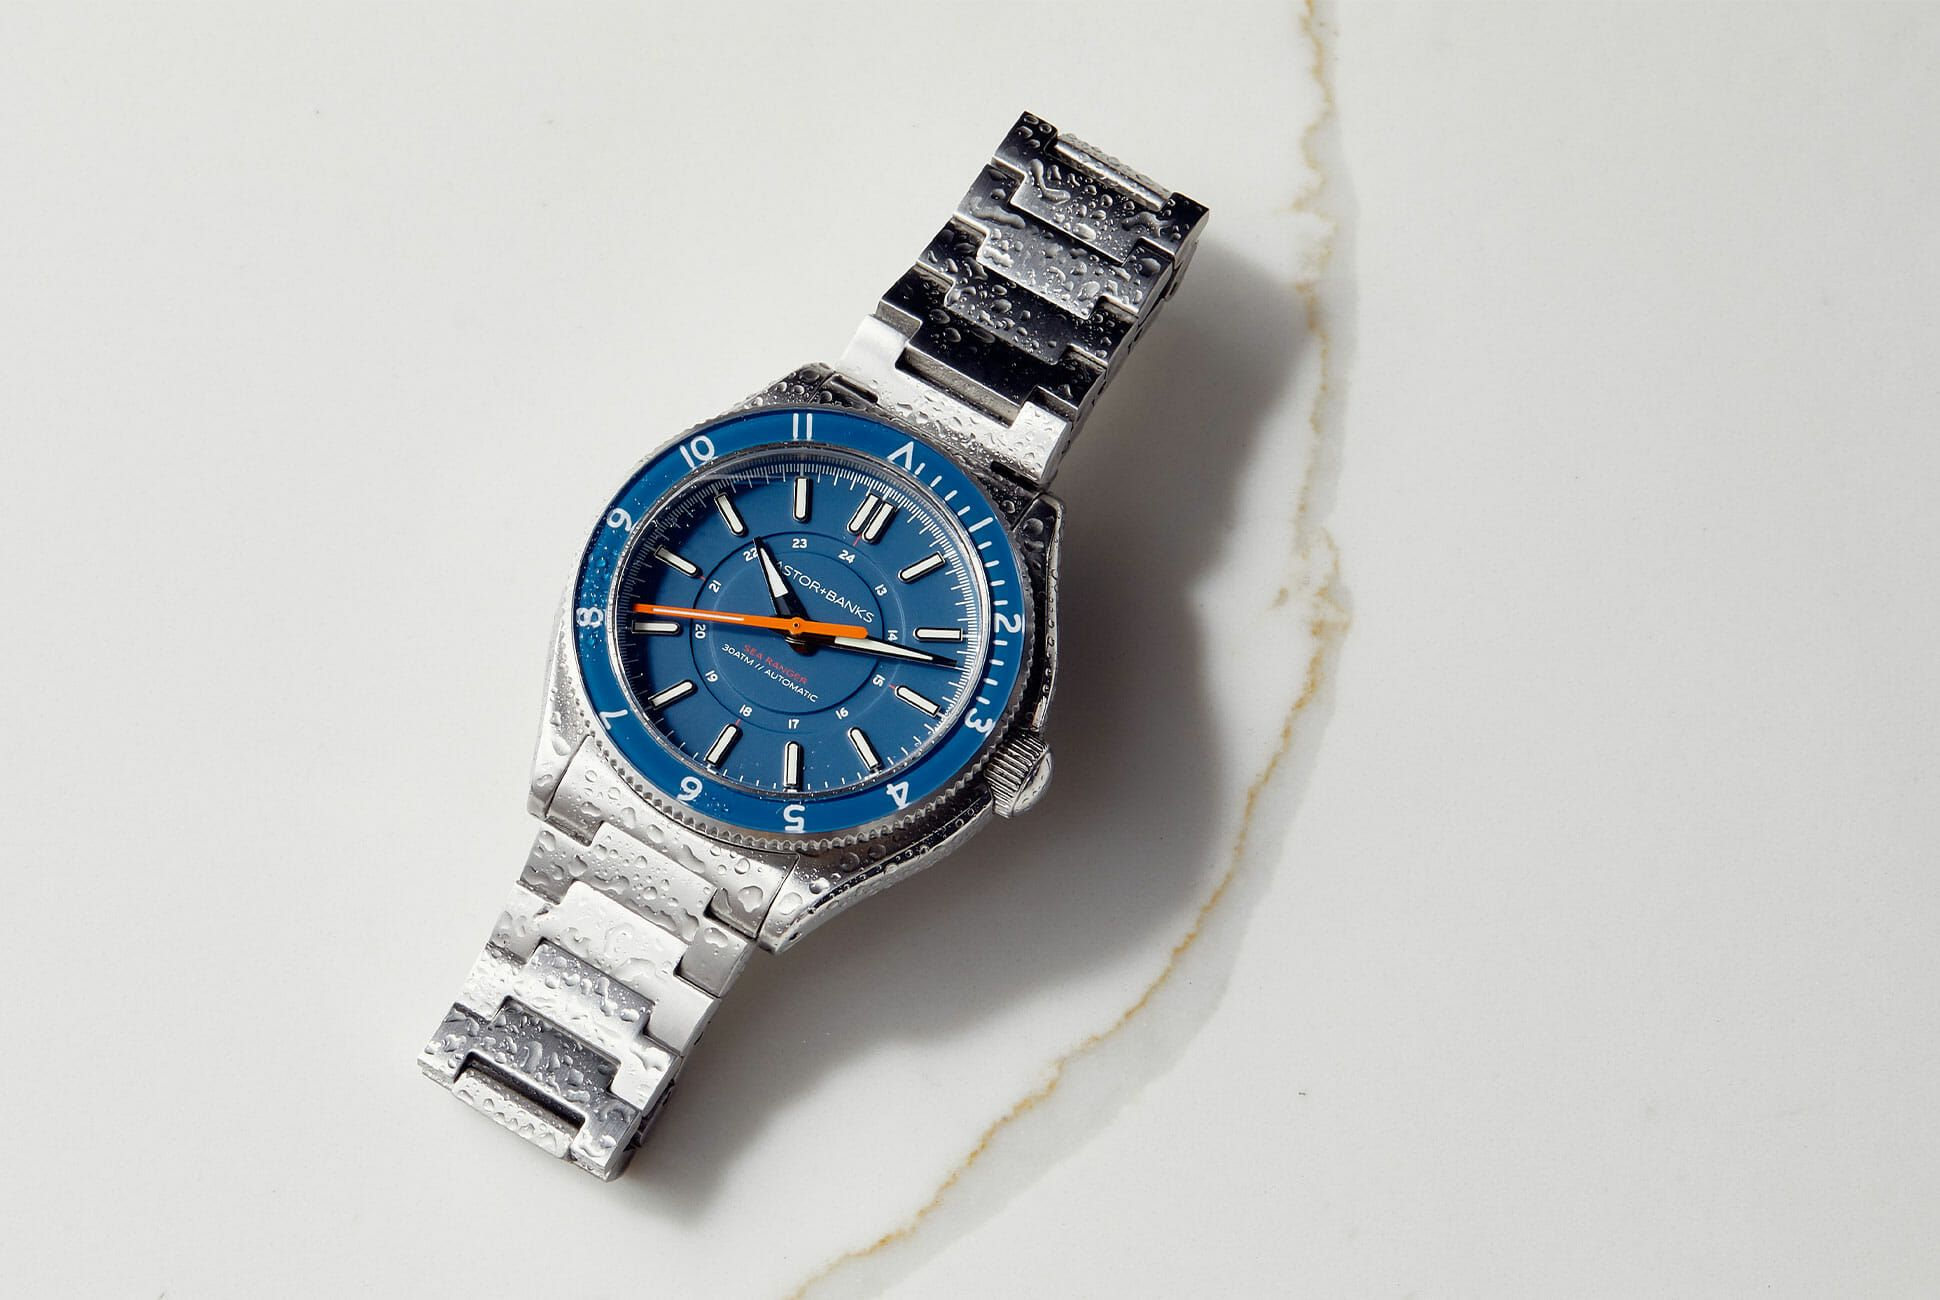 The-Sea-Ranger-is-a-Field-Watch-and-Dive-Watch-in-One-Gear-Patrol-slide-1